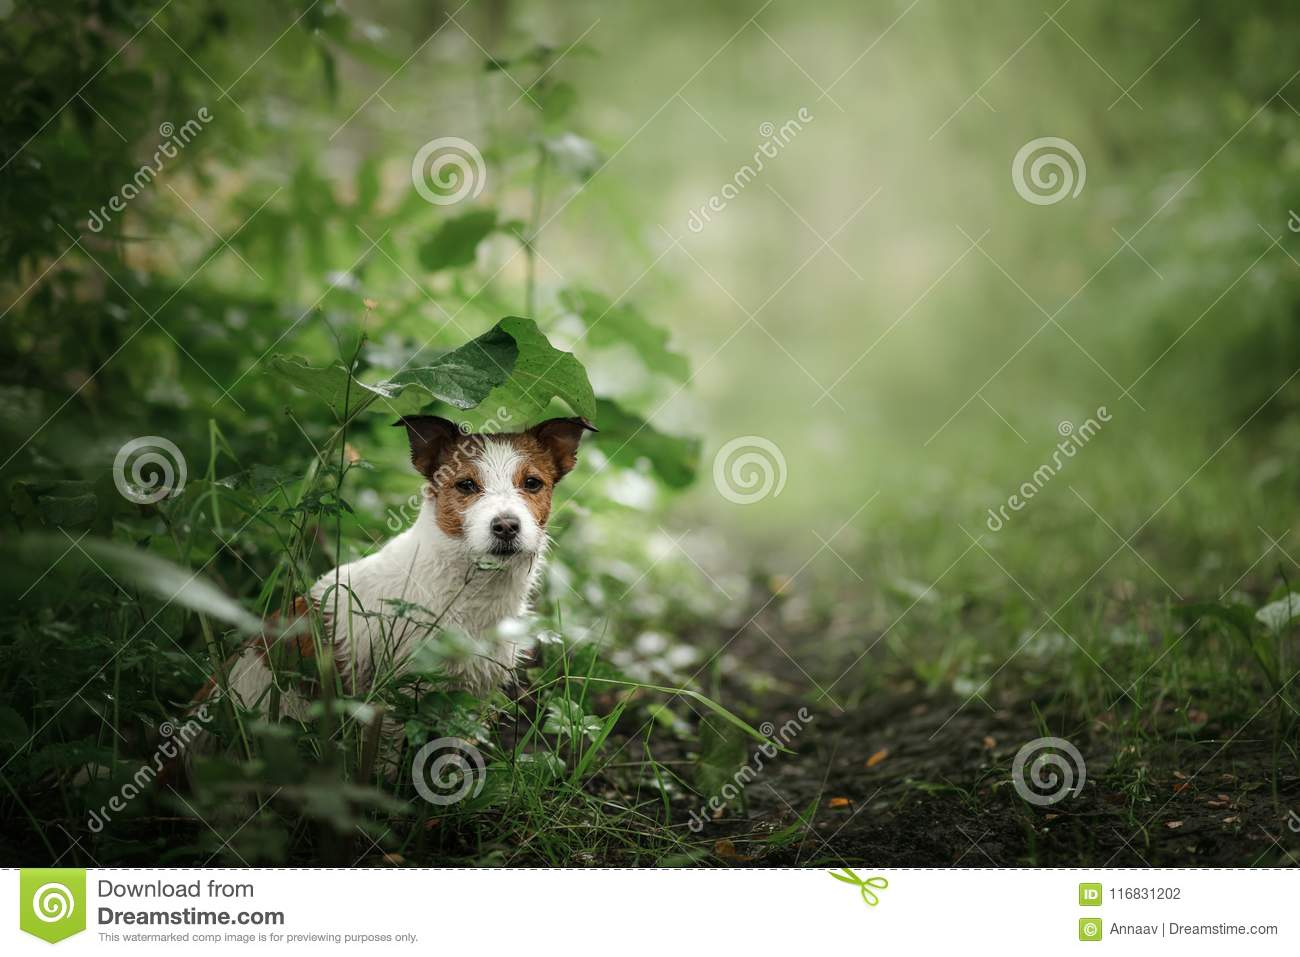 Small dog in the rain hides under a leaf